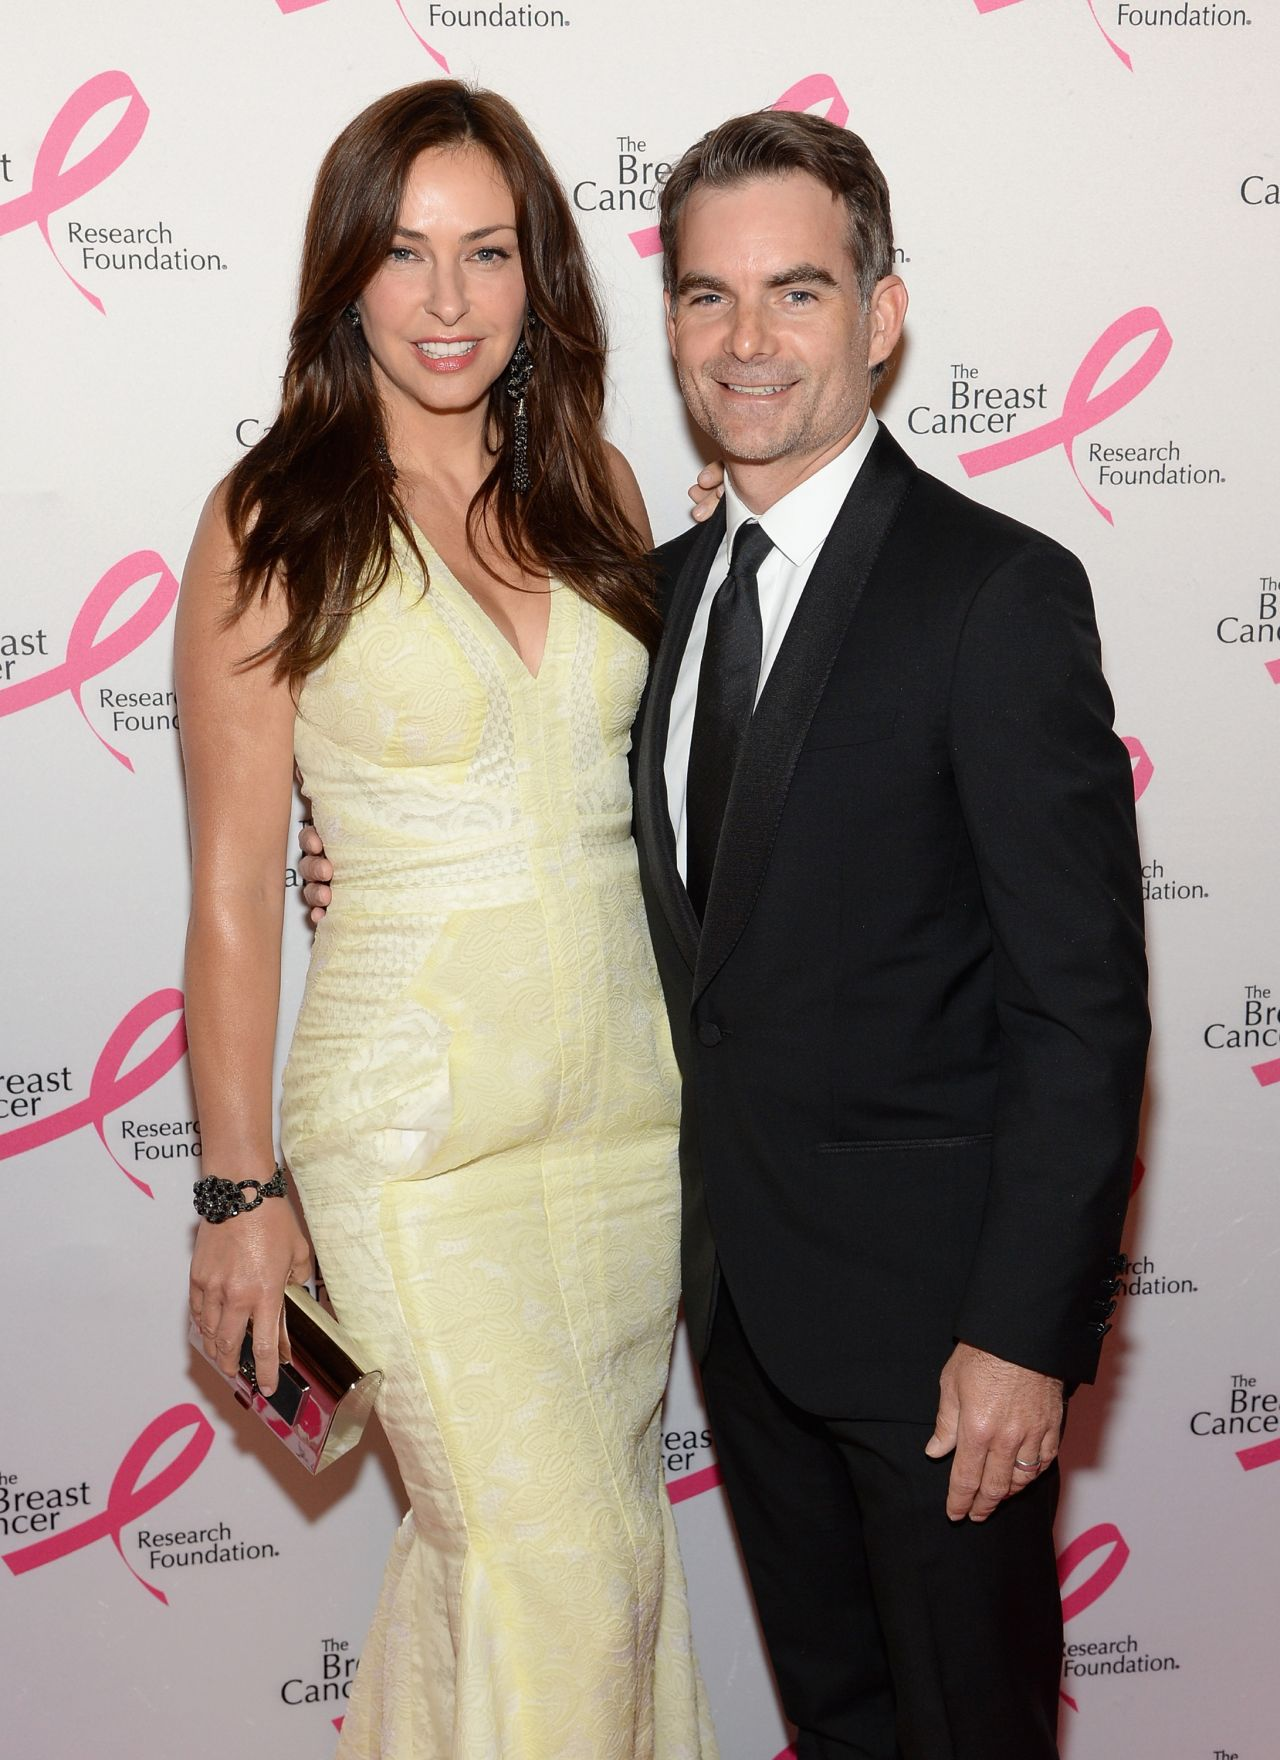 Ingrid Vandebosch – The Breast Cancer Foundation's 2014 Hot Pink Party in New york City